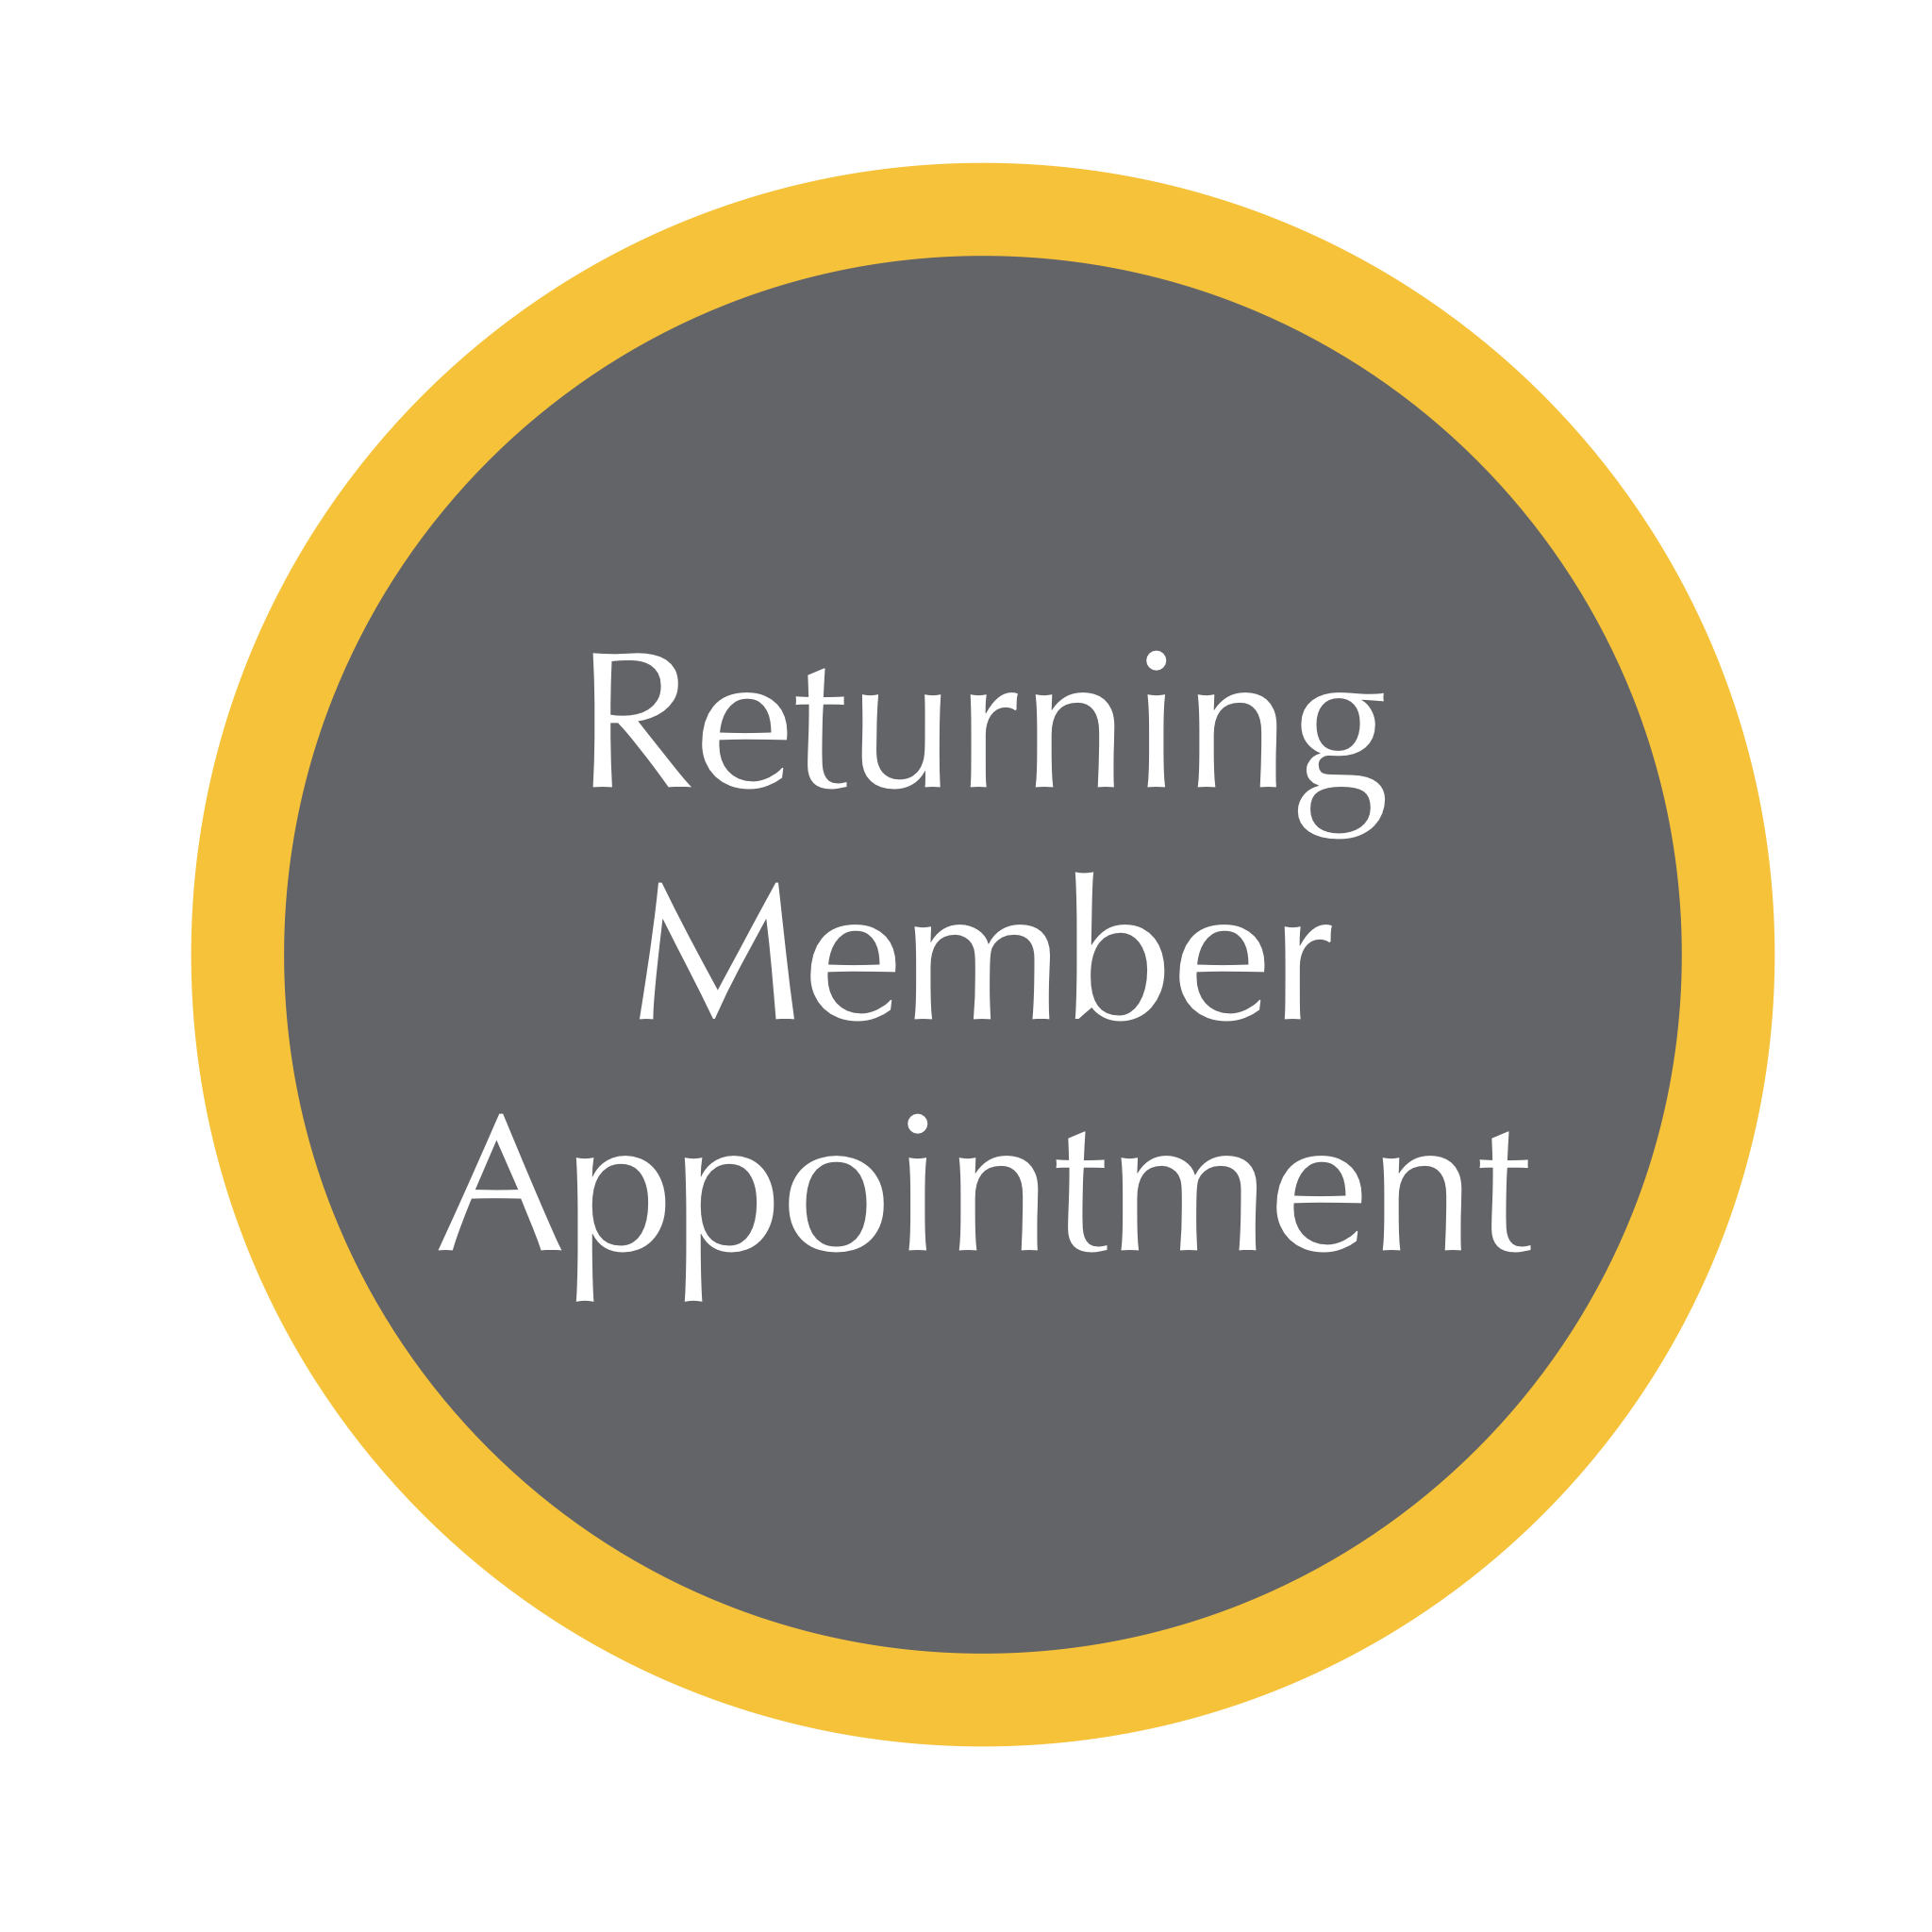 Returning Member Appointment